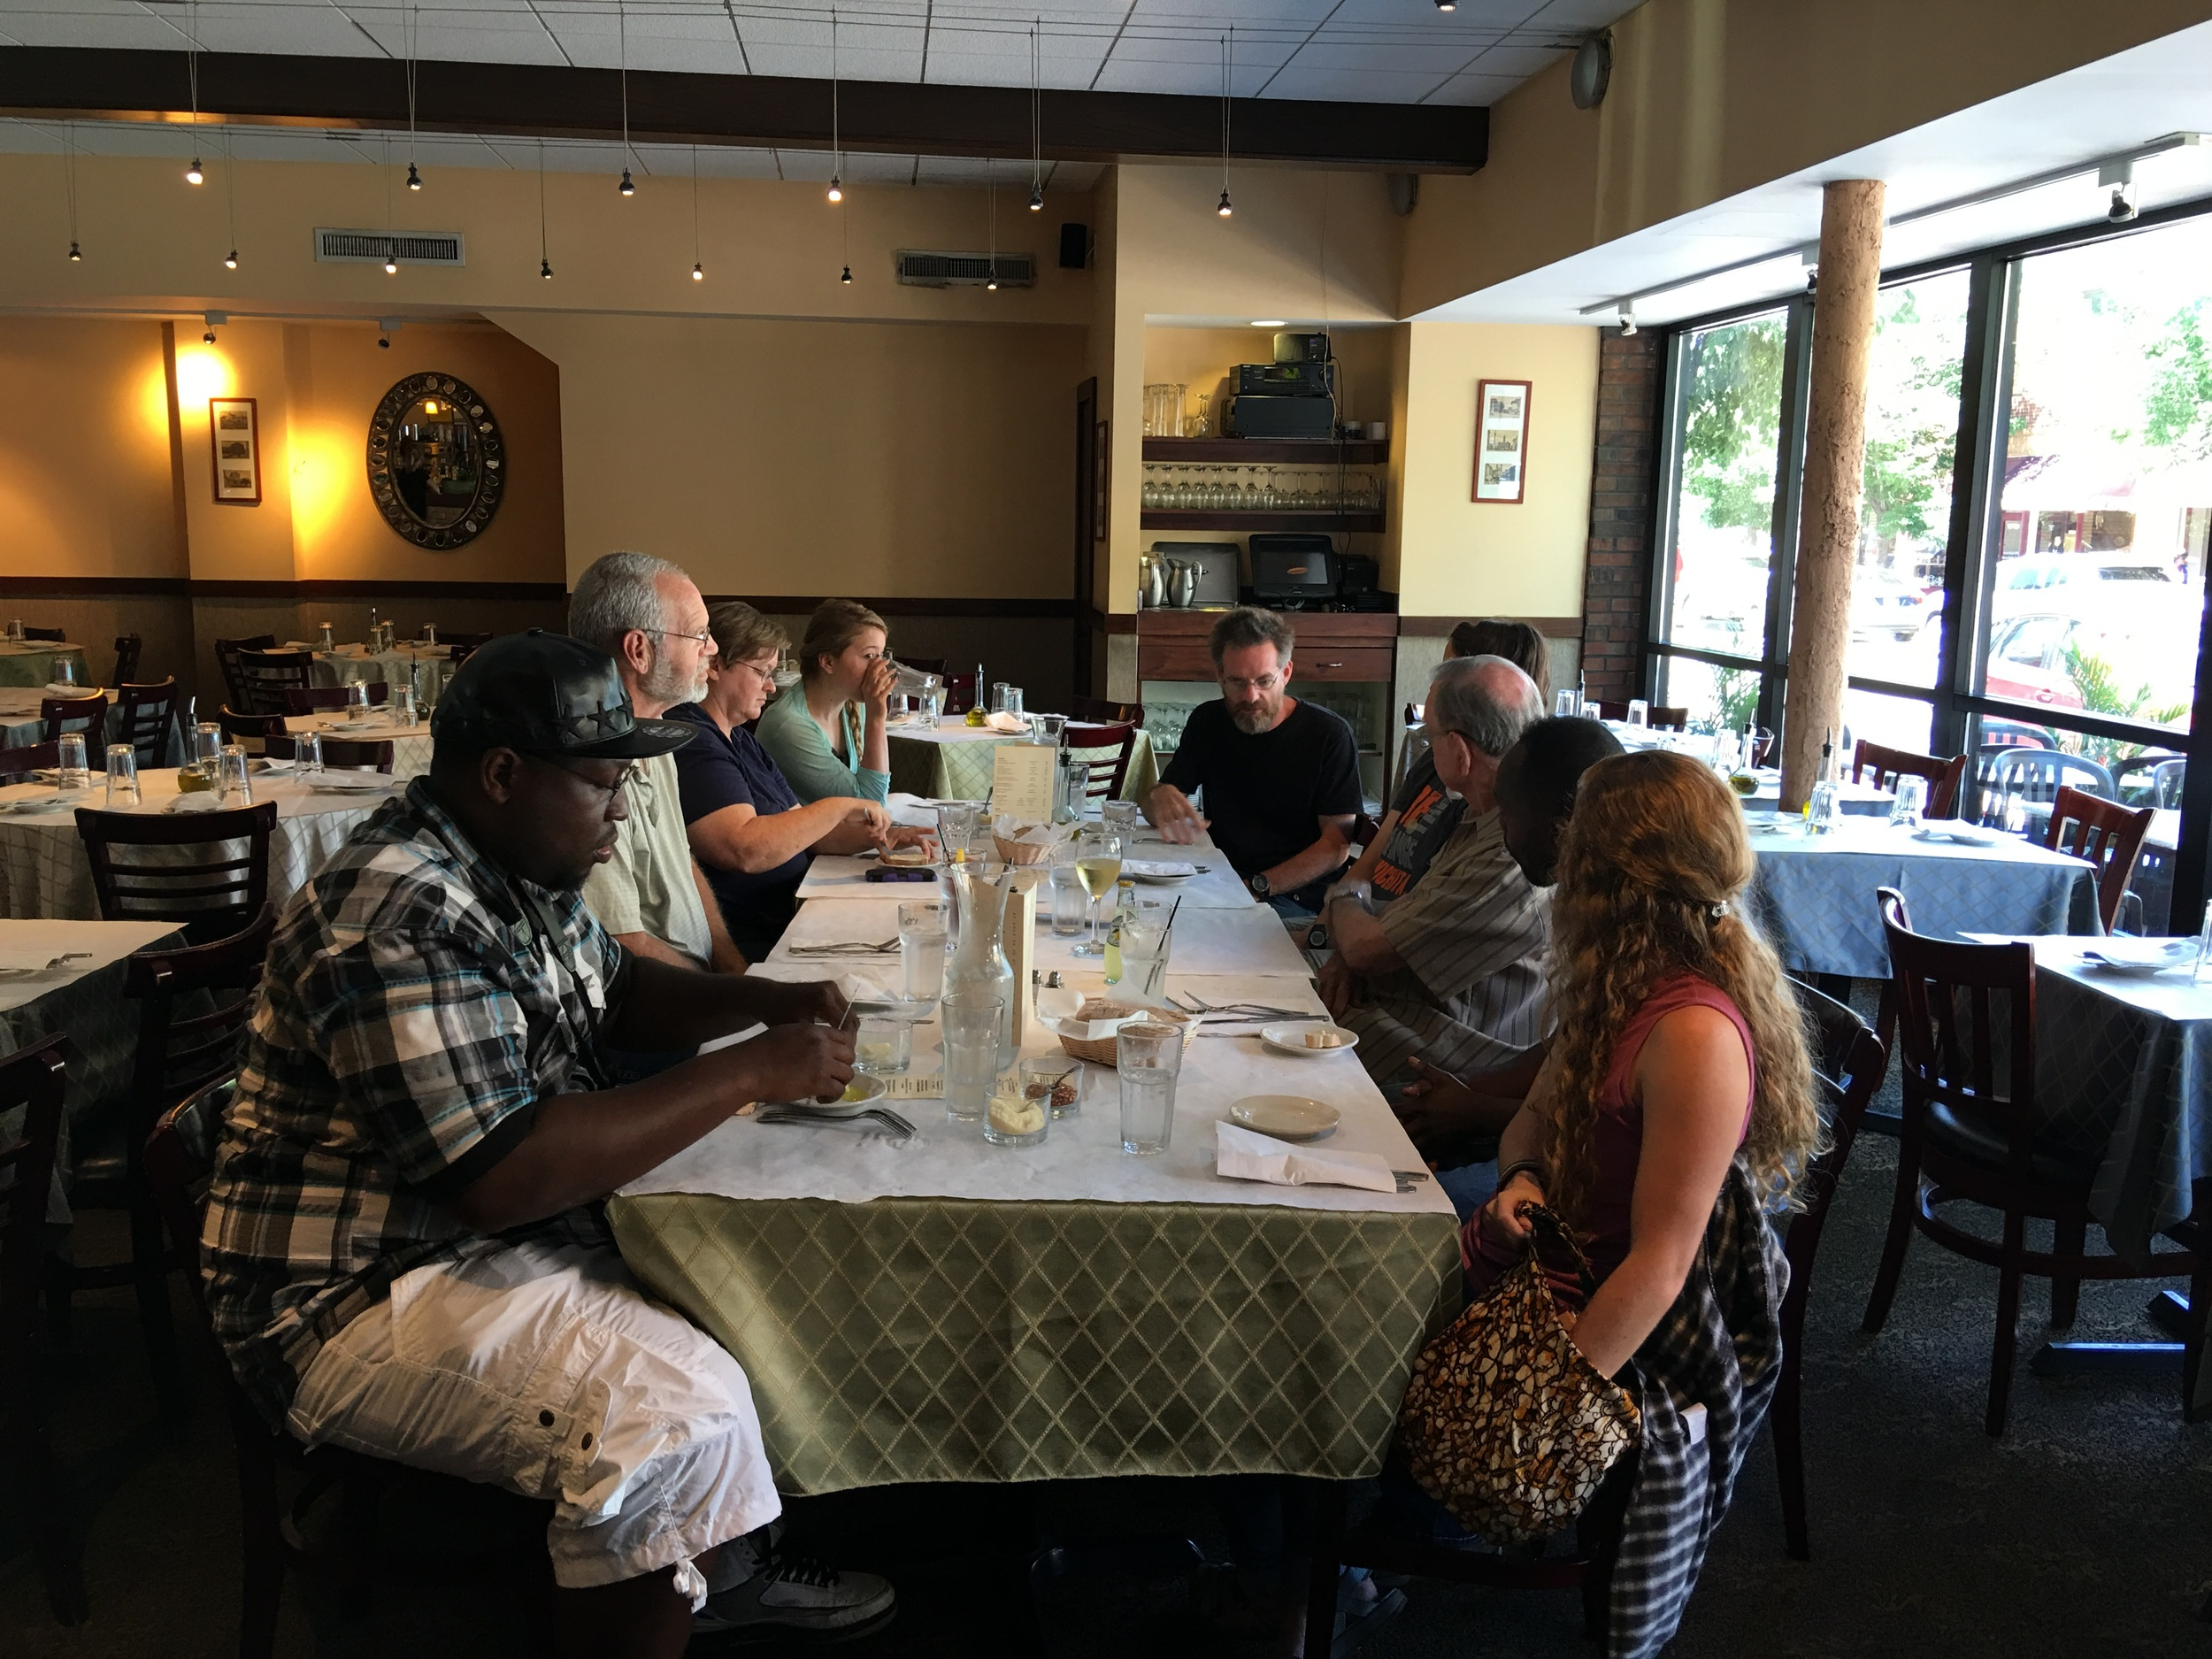 Our group gathers with folks from Indy, along with Mr. John McKnight at Trattoria D.O.C. in Evanston, Illinois.